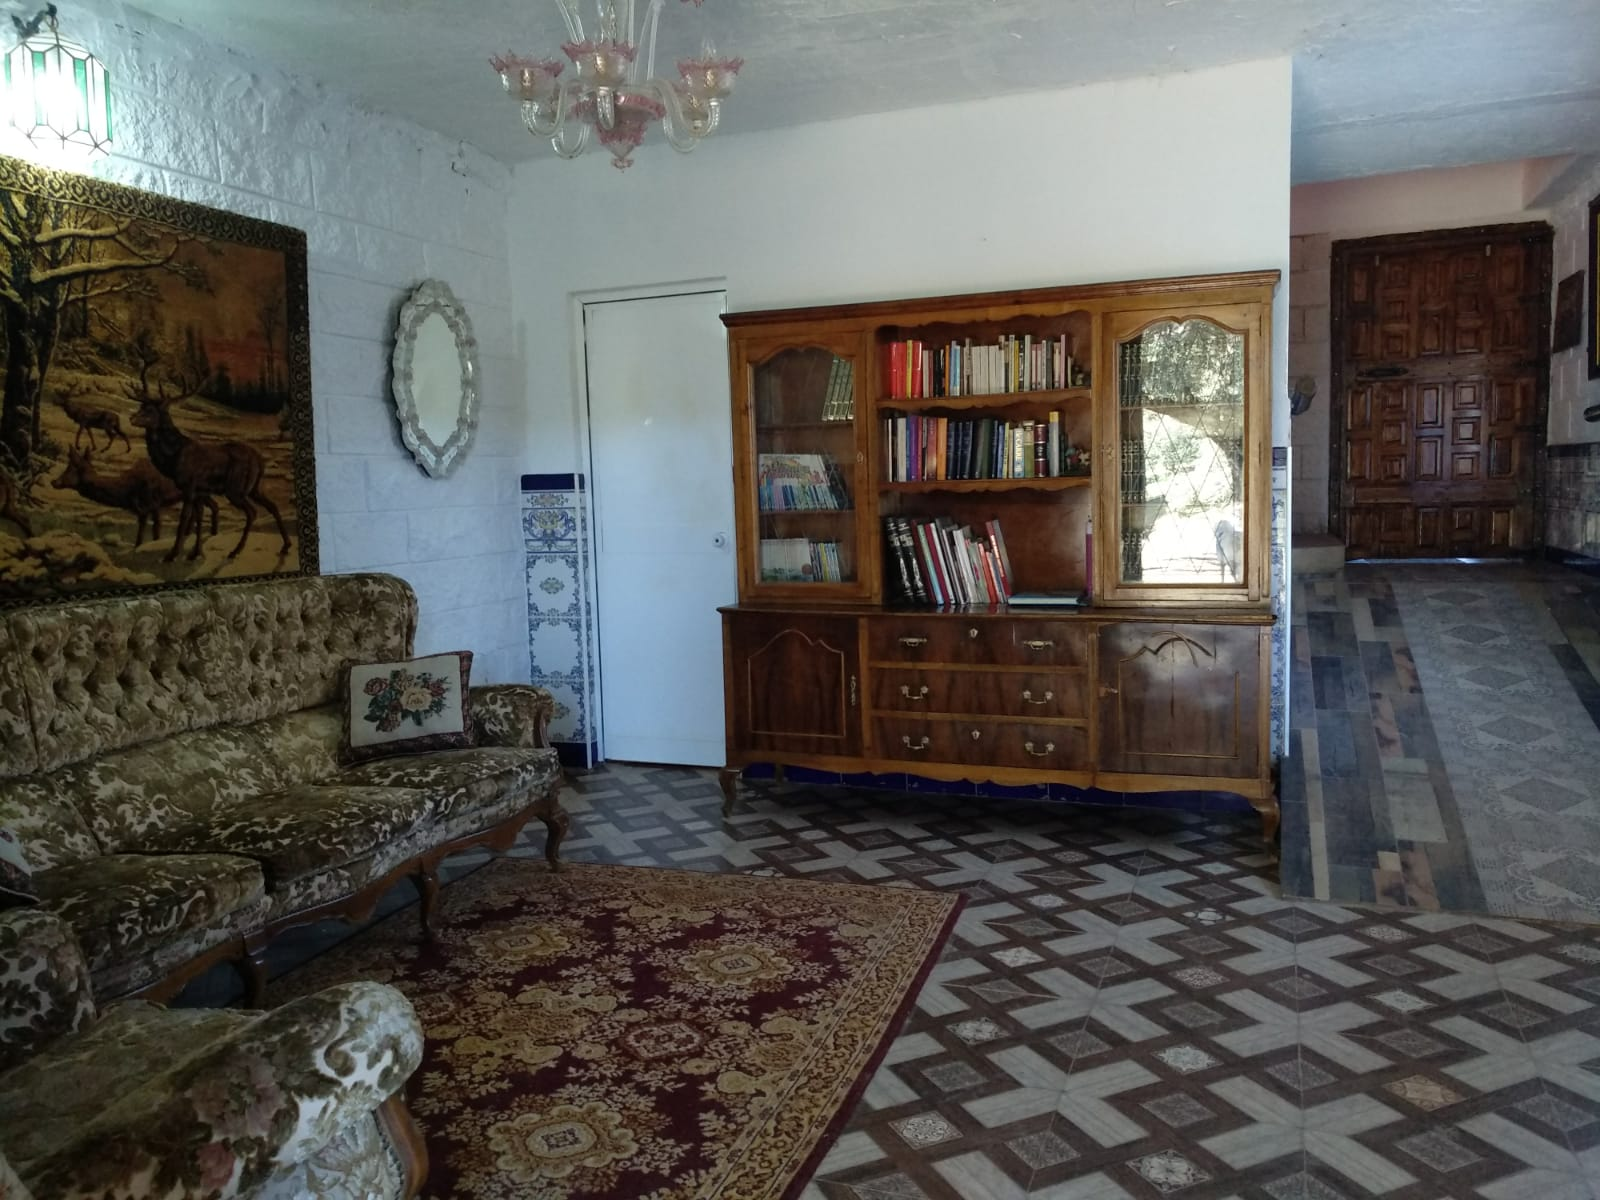 Living room in rural house in Córdoba, Spain